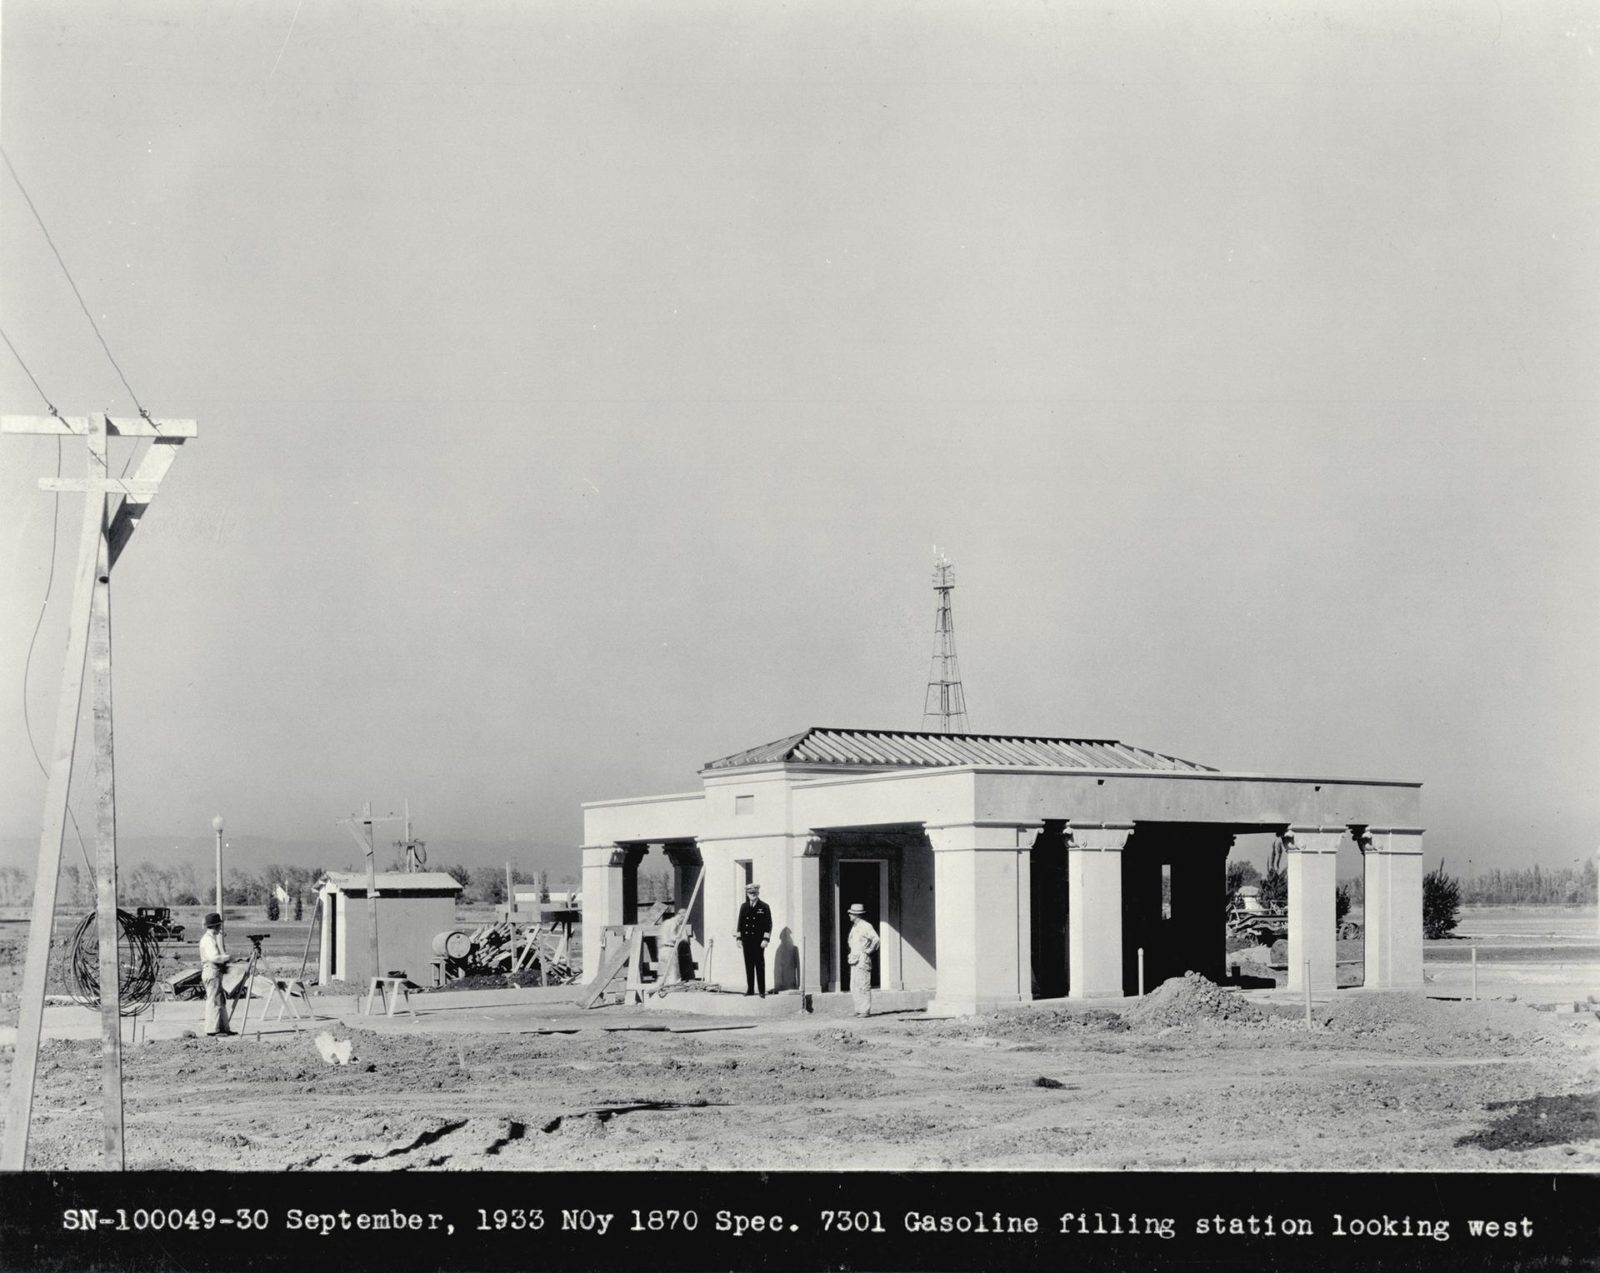 NAS Sunnyvale, Mt View Ca Gasoline Filling Station looking west ARC-1933-A93-0073-6